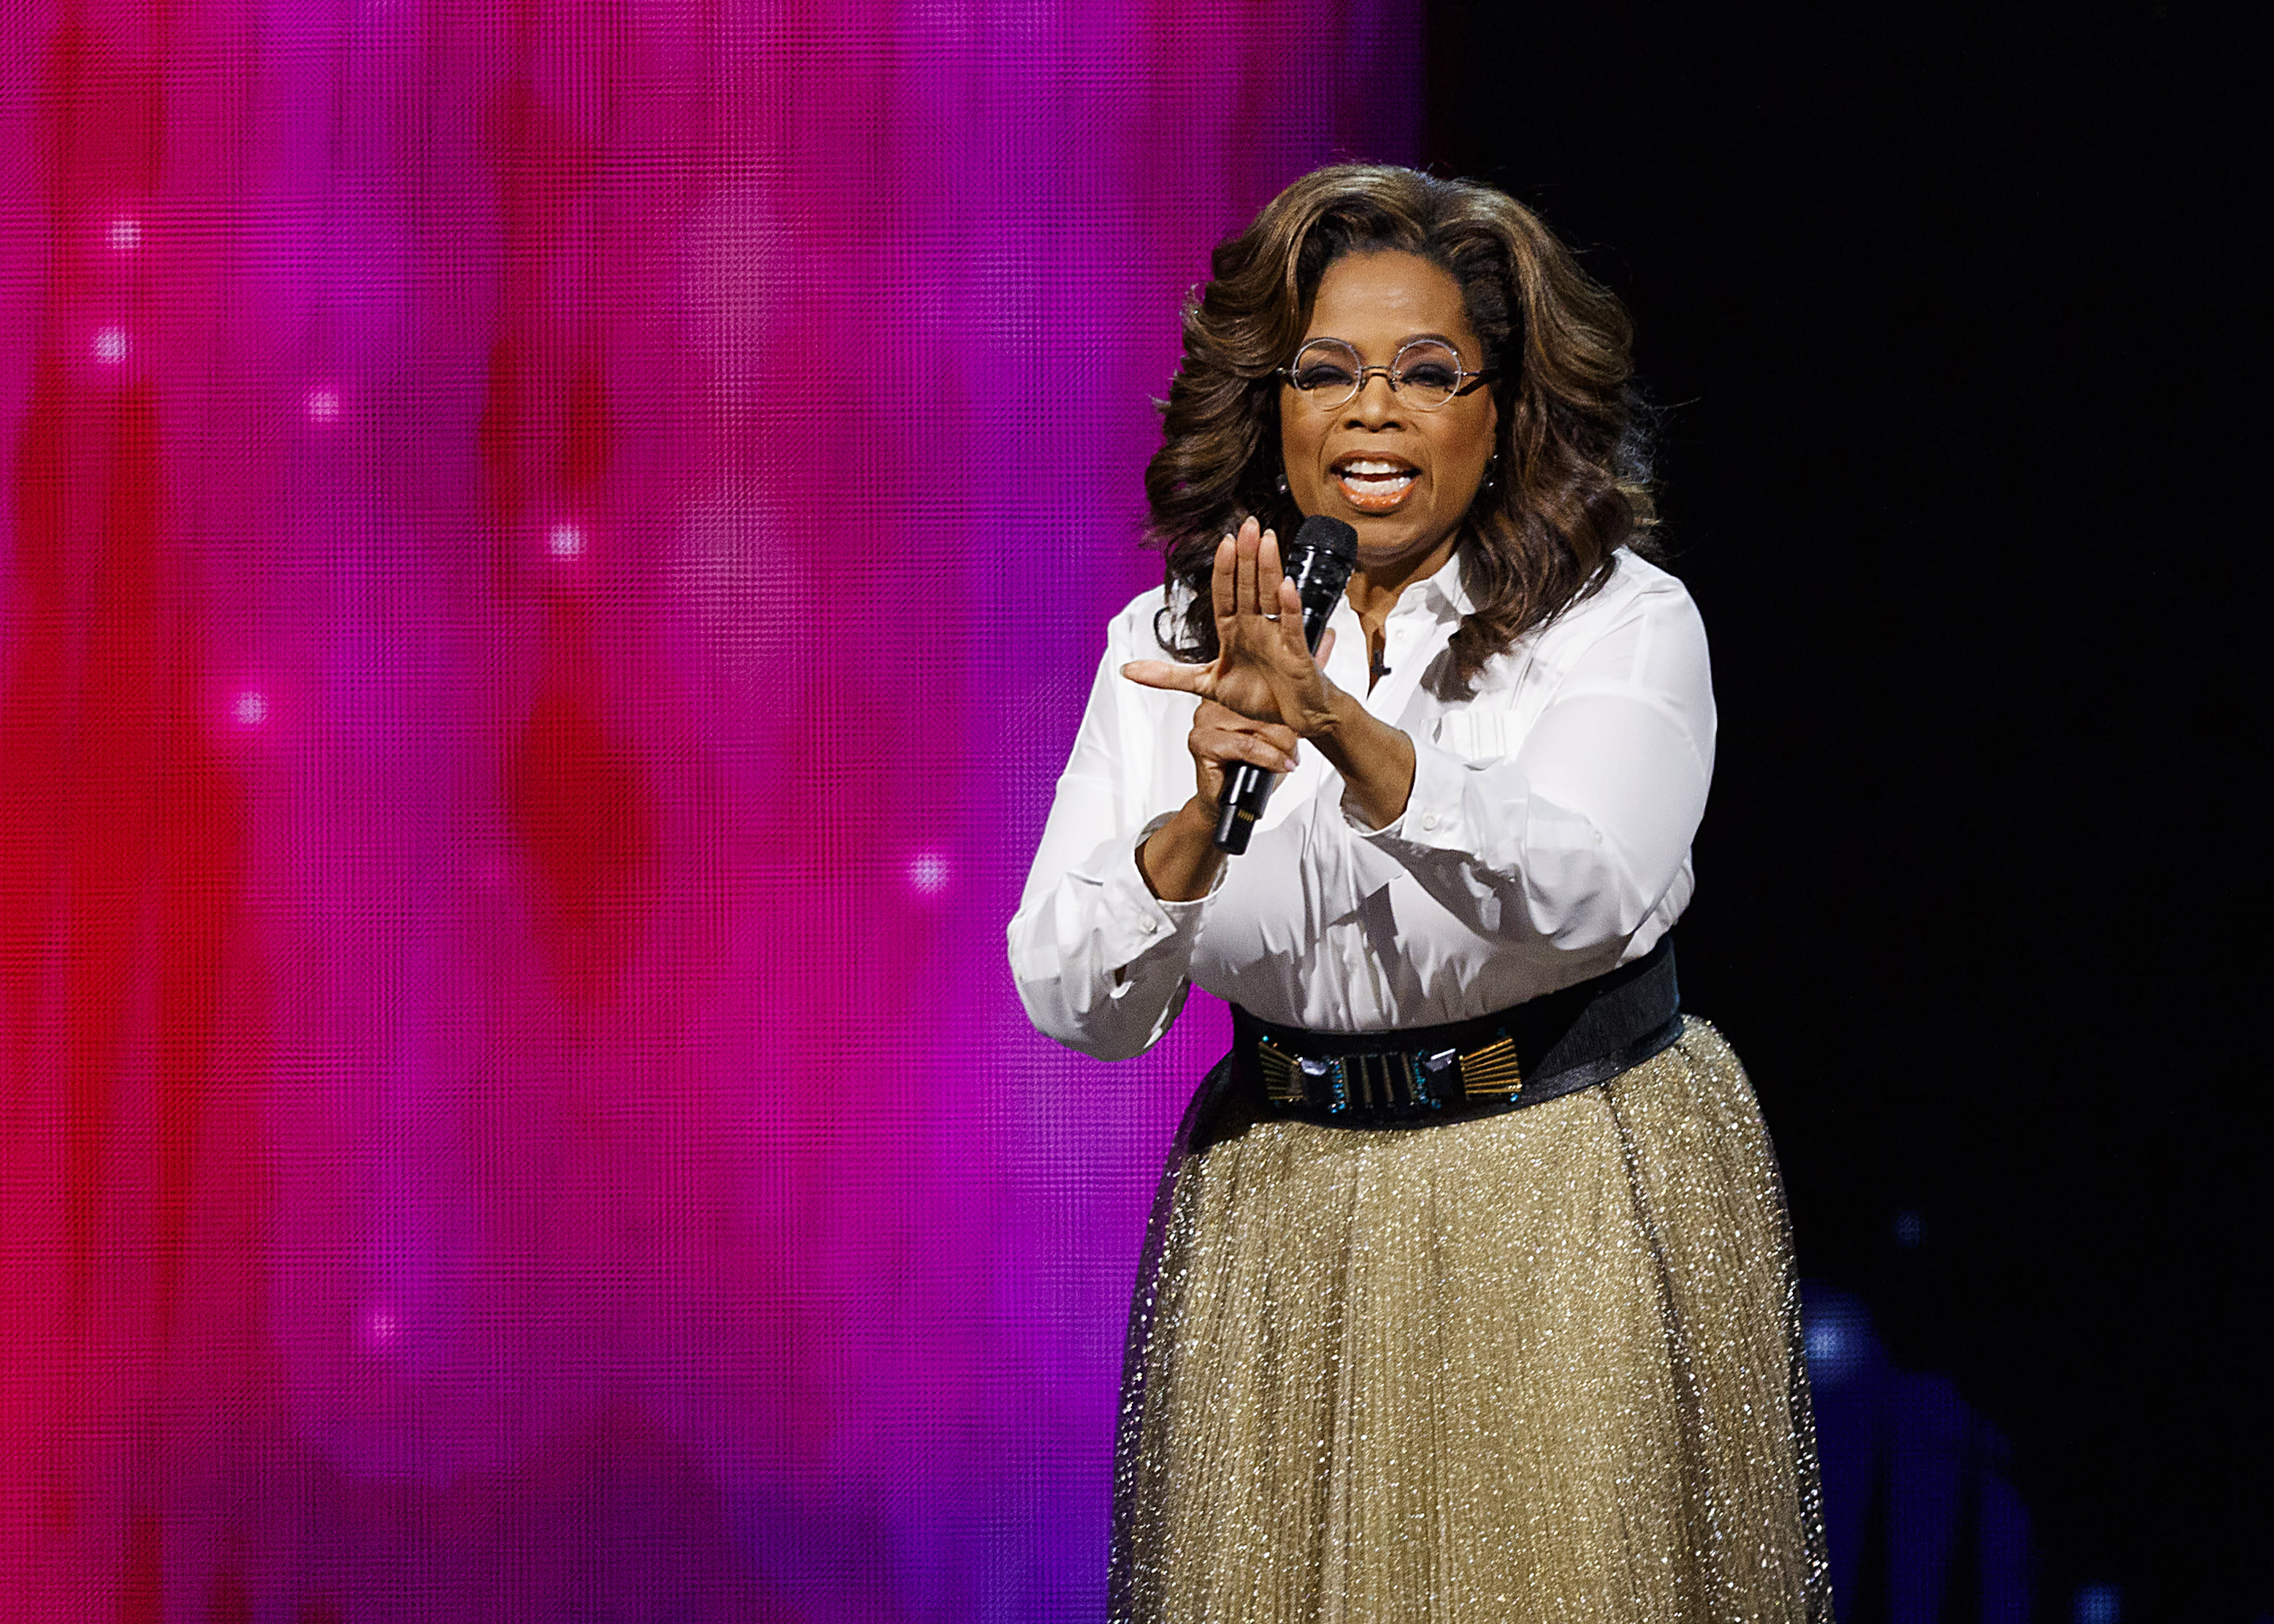 Oprah Winfrey says she never seriously considered presidential run: 'So happy I'm not in any of it'